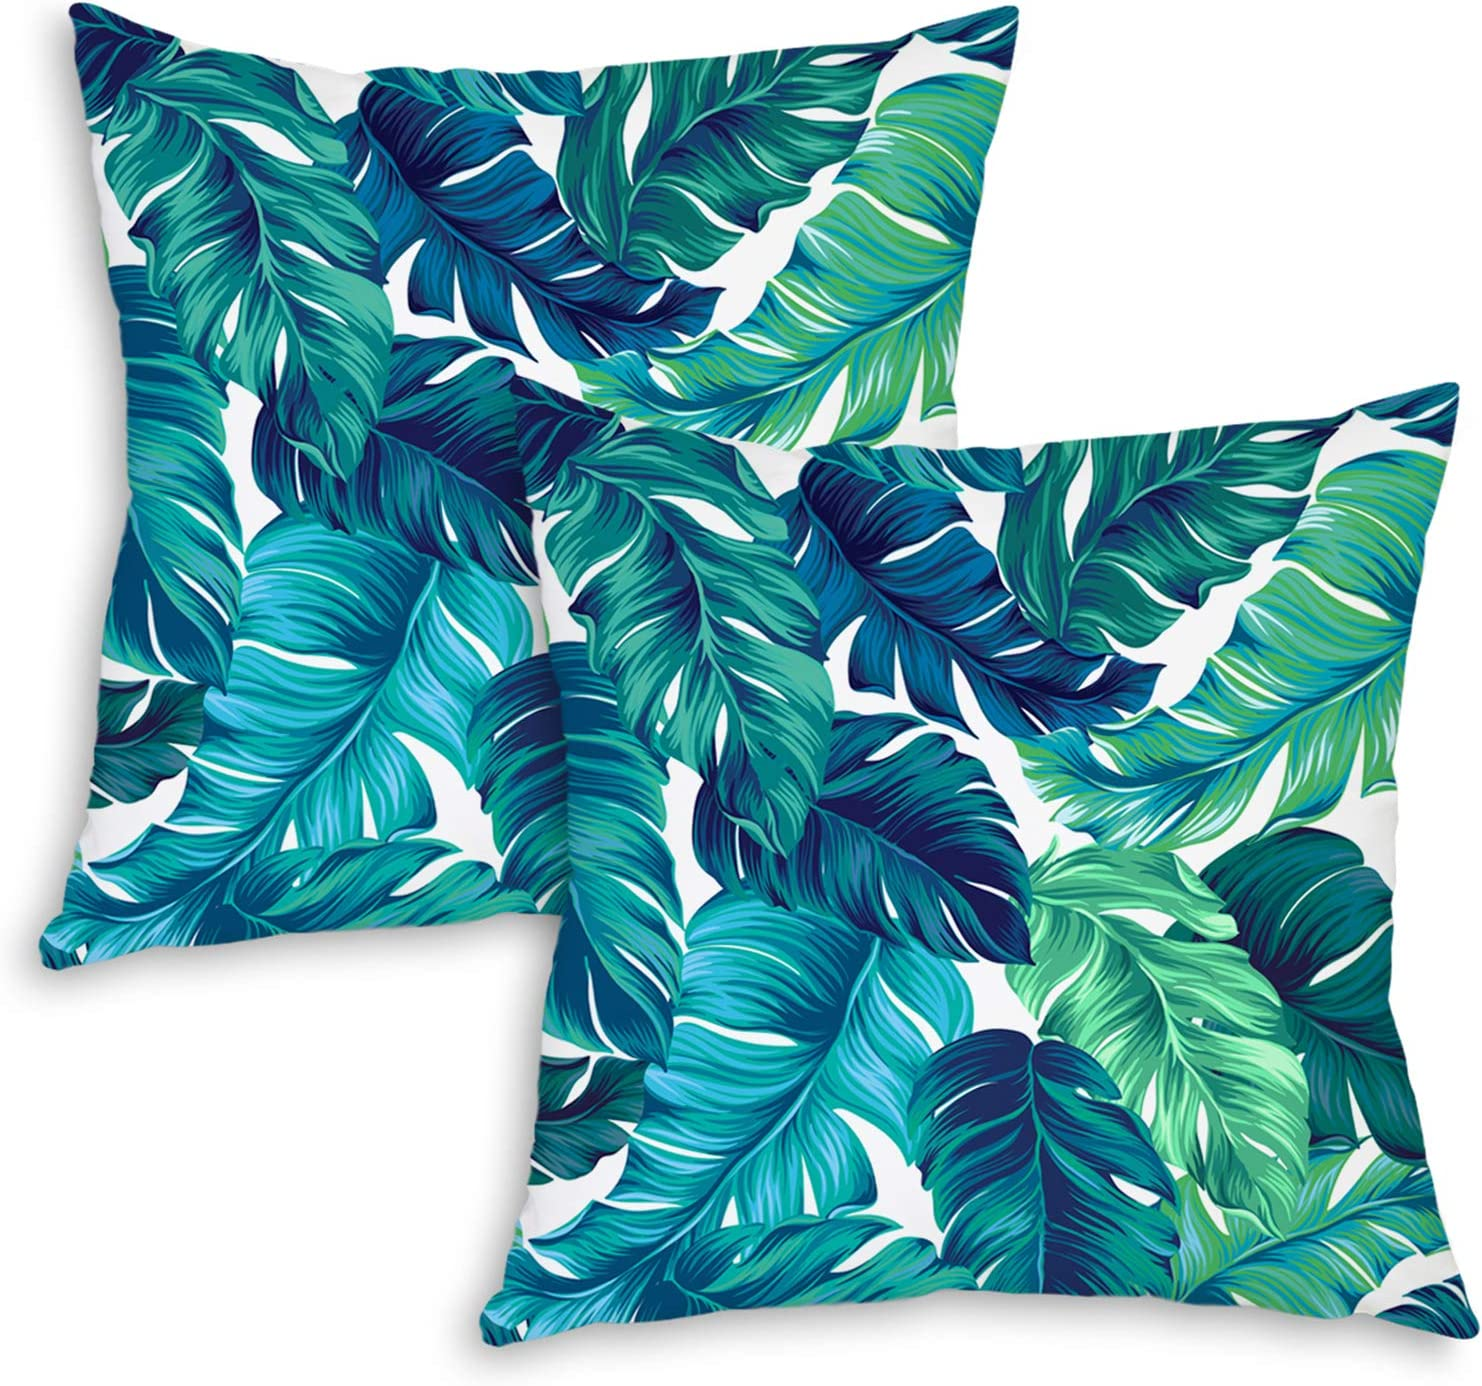 QoGoer Tropical Palm Ranking TOP10 Leaves Throw Pillow - Set of Covers Summe Translated 2